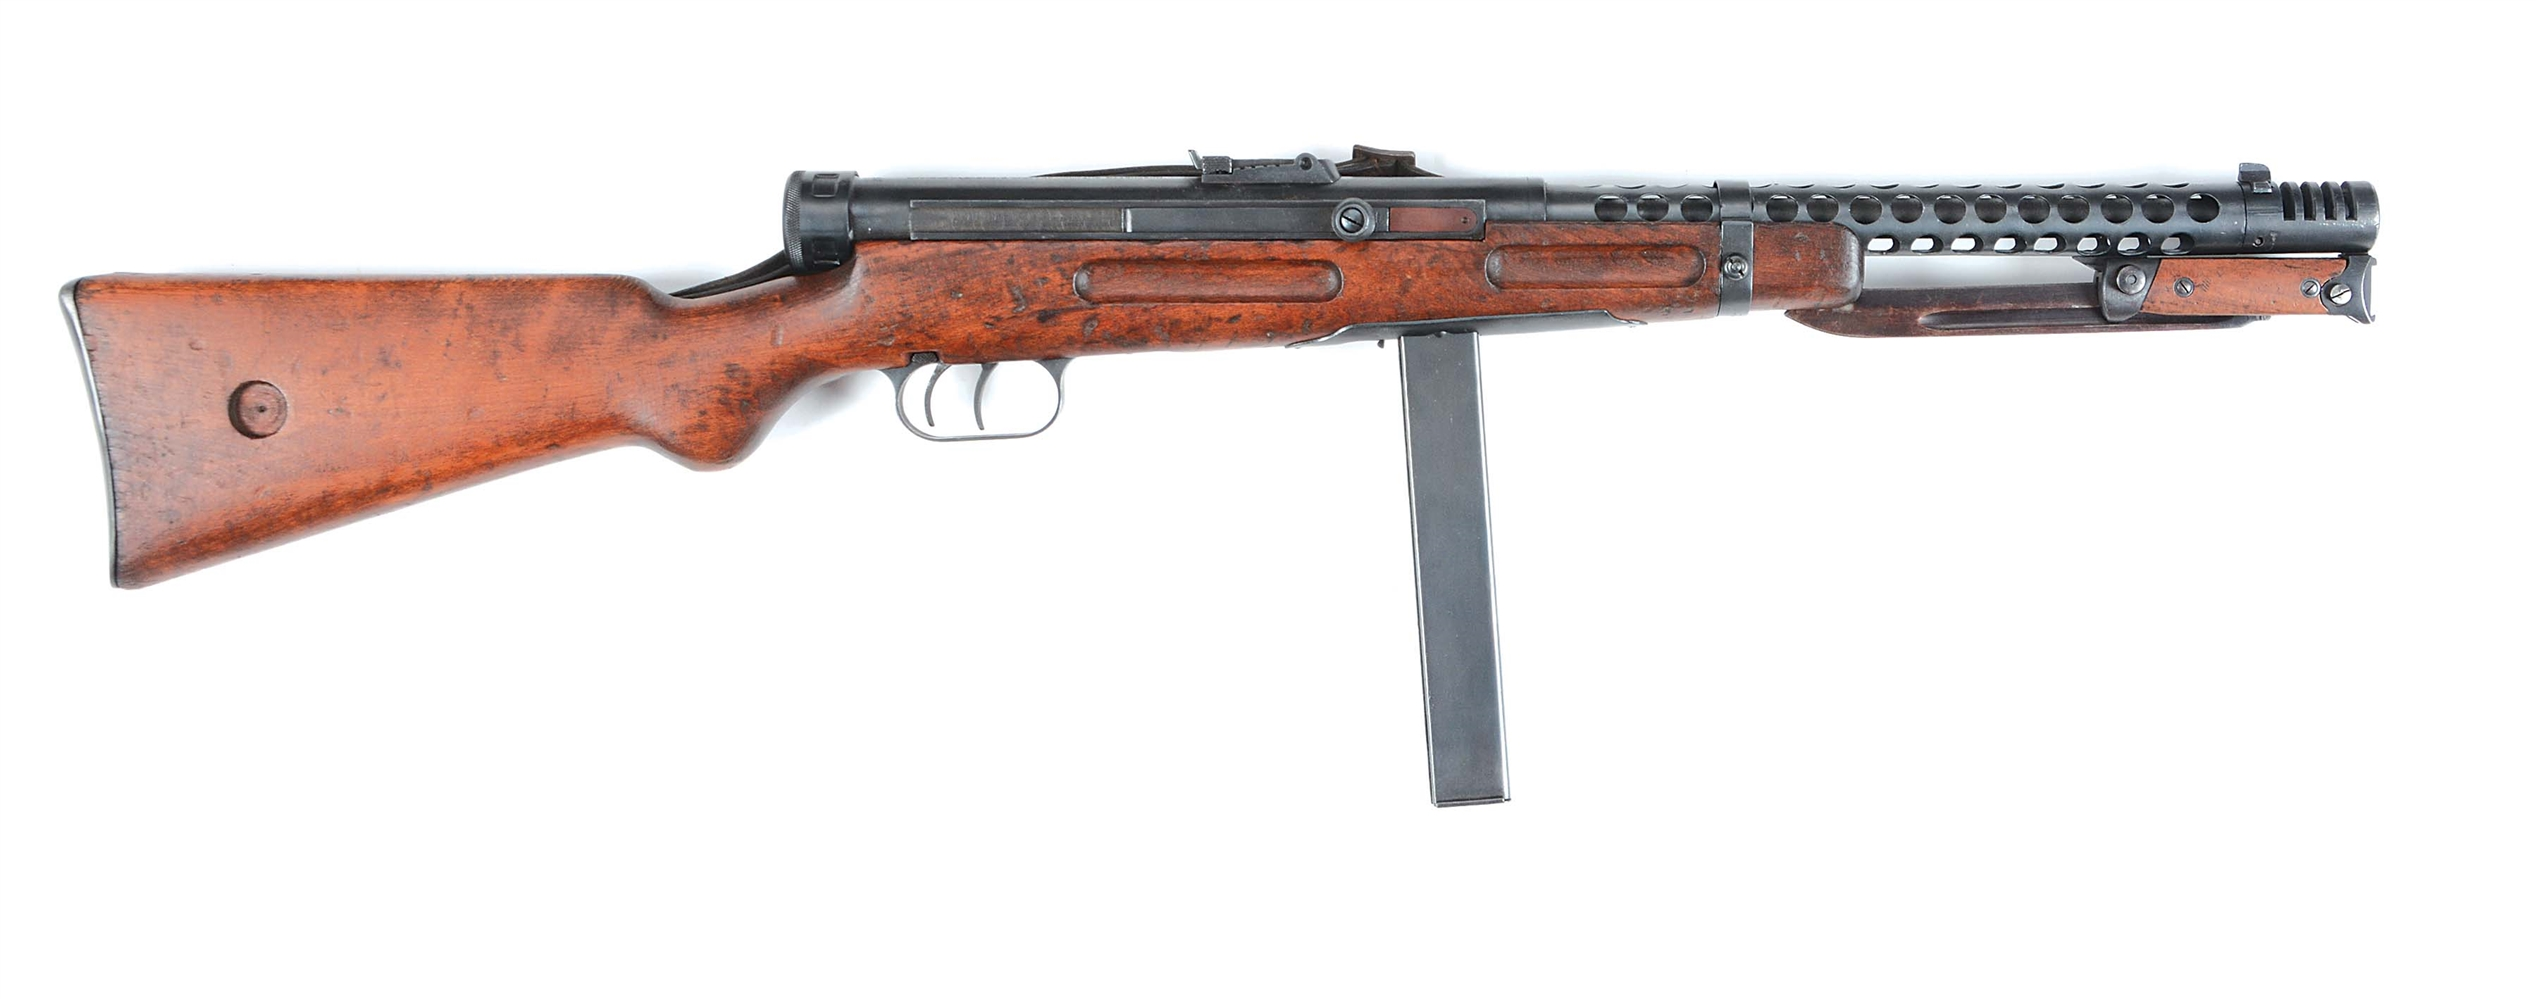 (N) VERY FINE AND SOUGHT AFTER ITALIAN WW2 BERETTA MODEL 38A MACHINE GUN (CURIO AND RELIC)